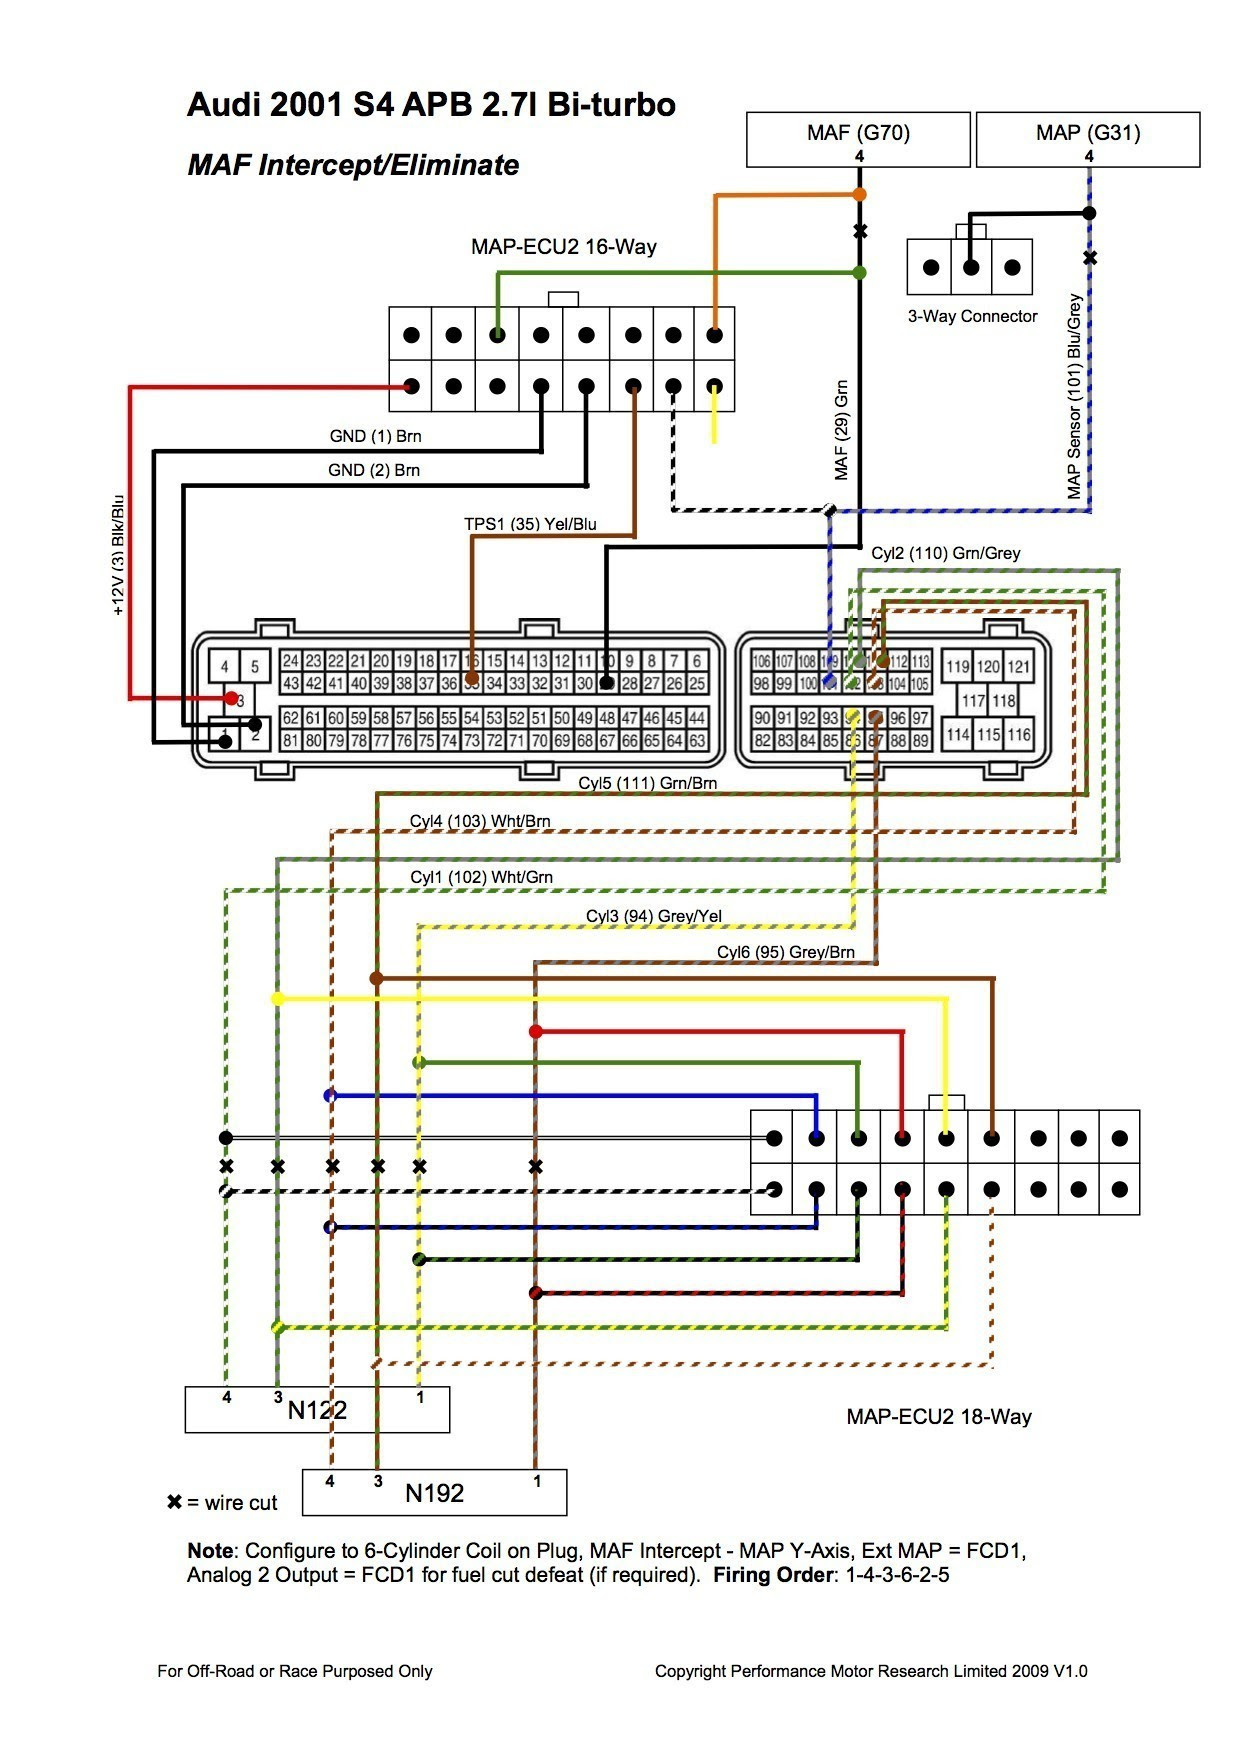 2007 Mazda 3 Radio Wiring Diagram from lh6.googleusercontent.com